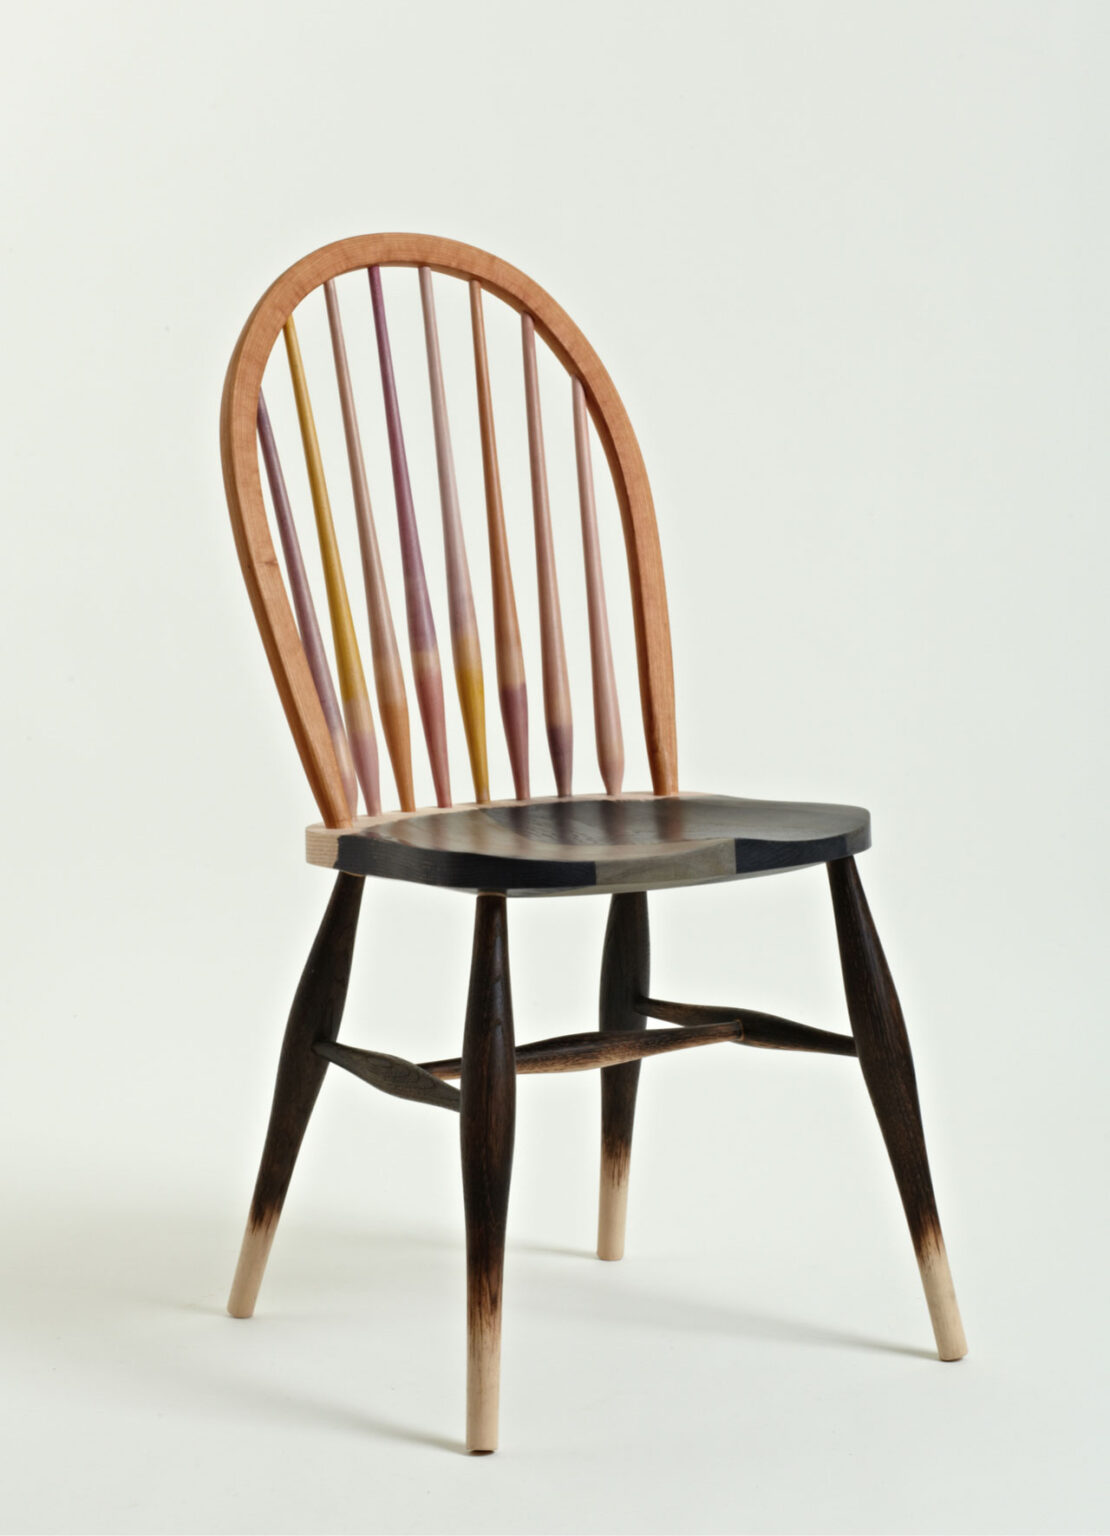 Product_Leftovers-Chair-HEKA